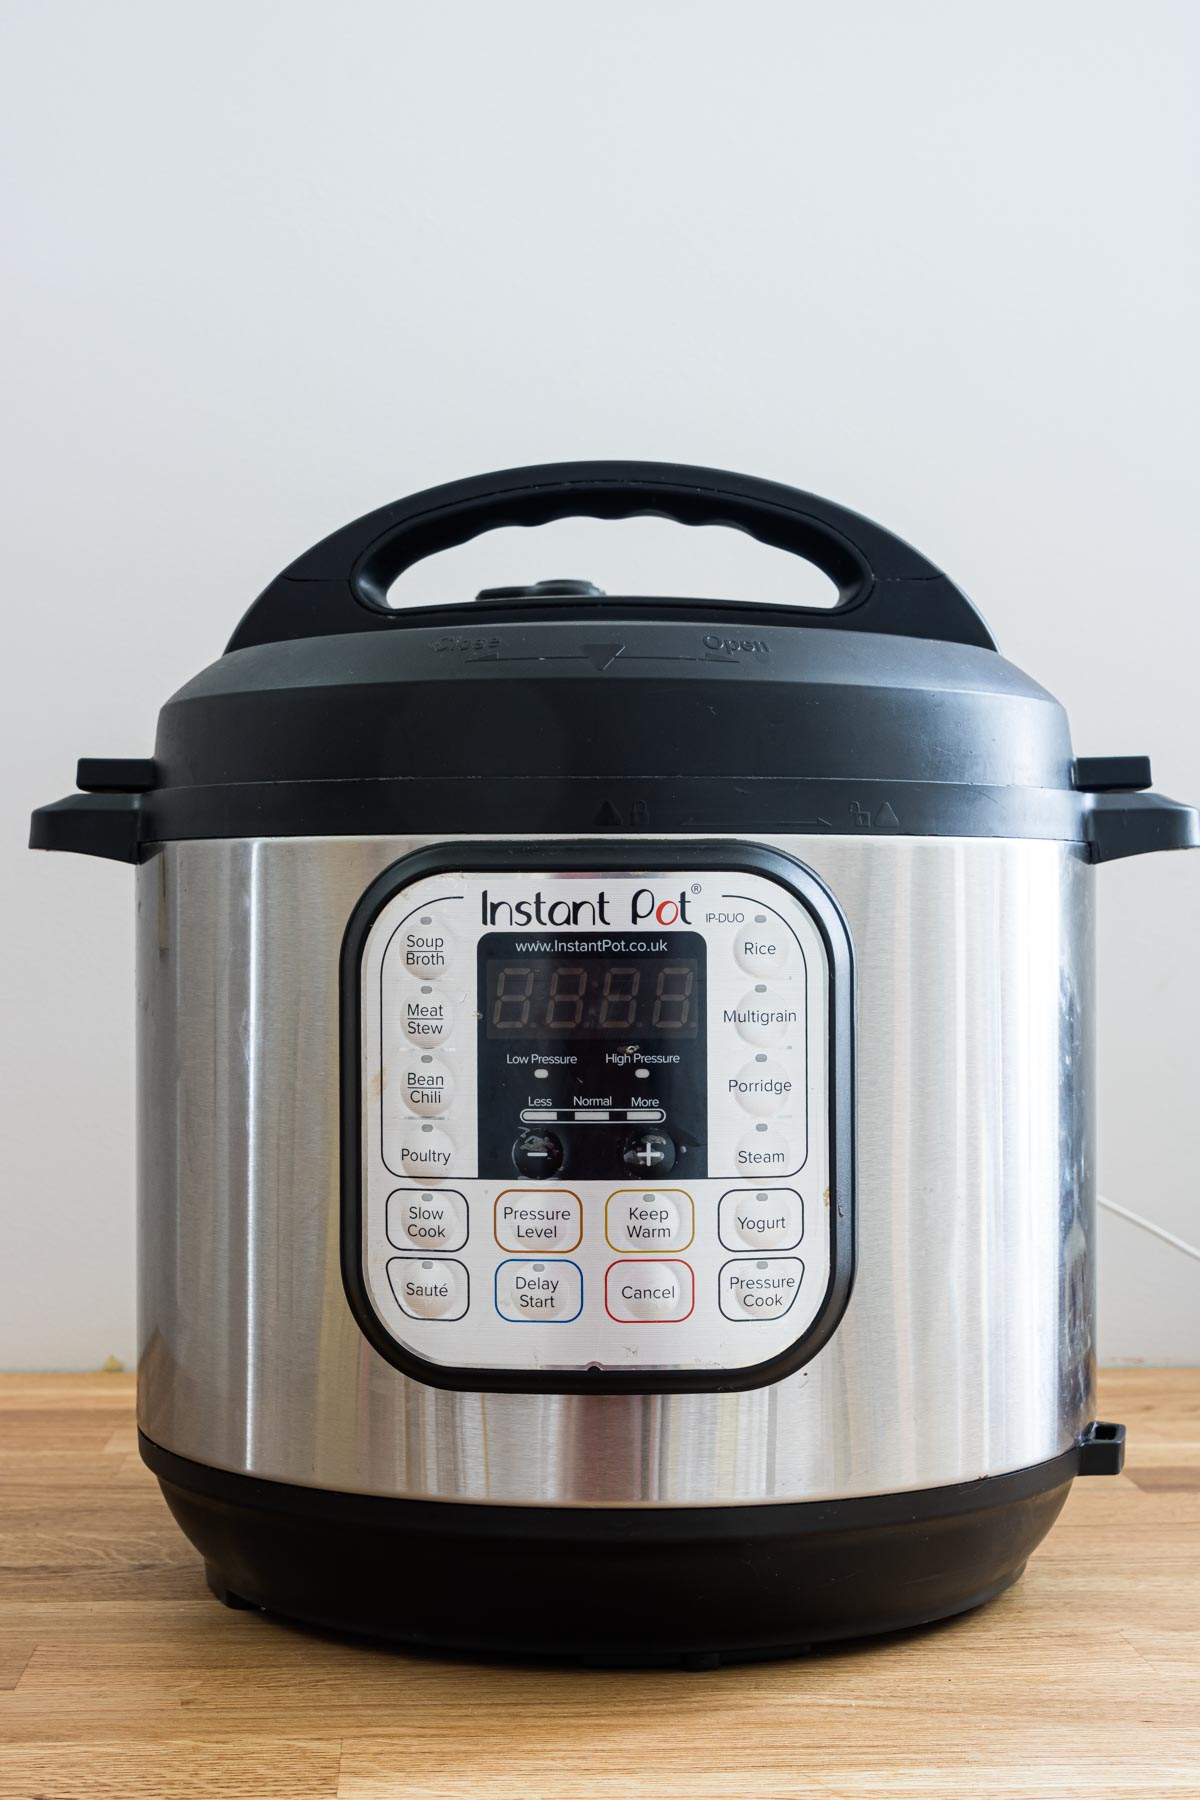 the front view of the instant pot buttons and settings panel